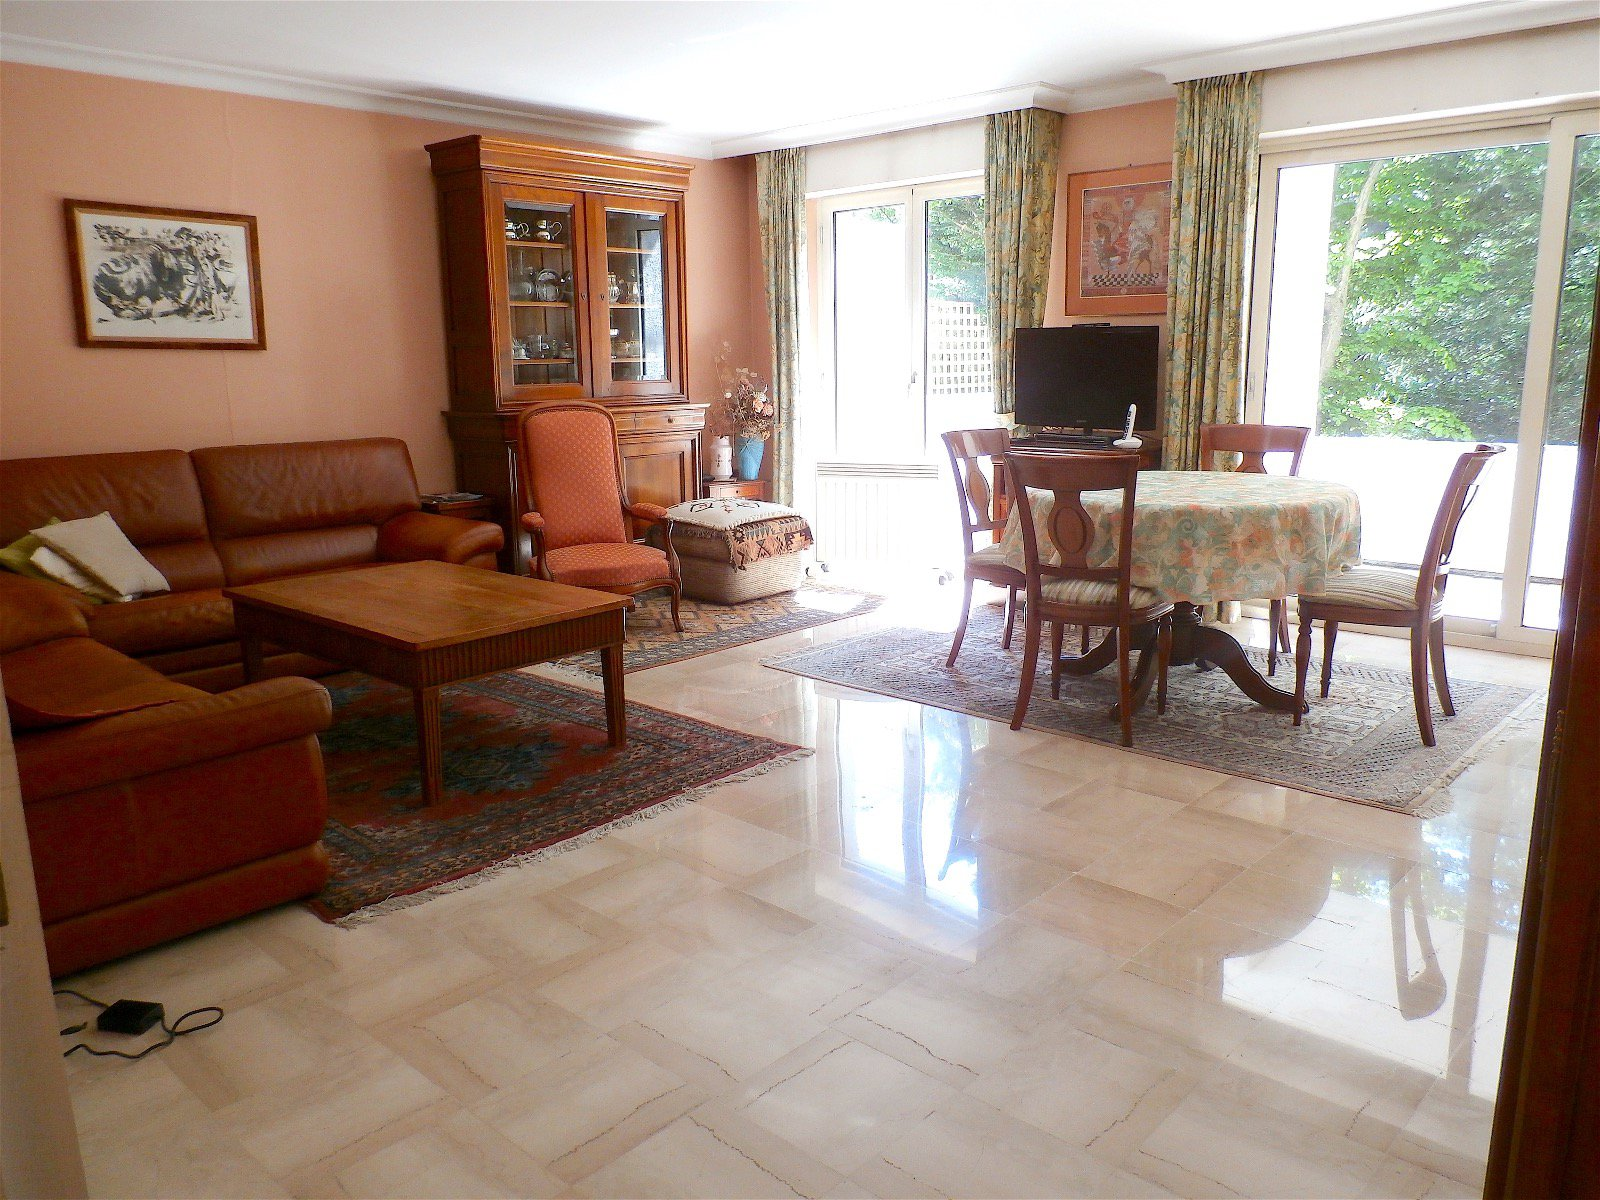 A572- Annecy, Appartement T3, triangle d'or